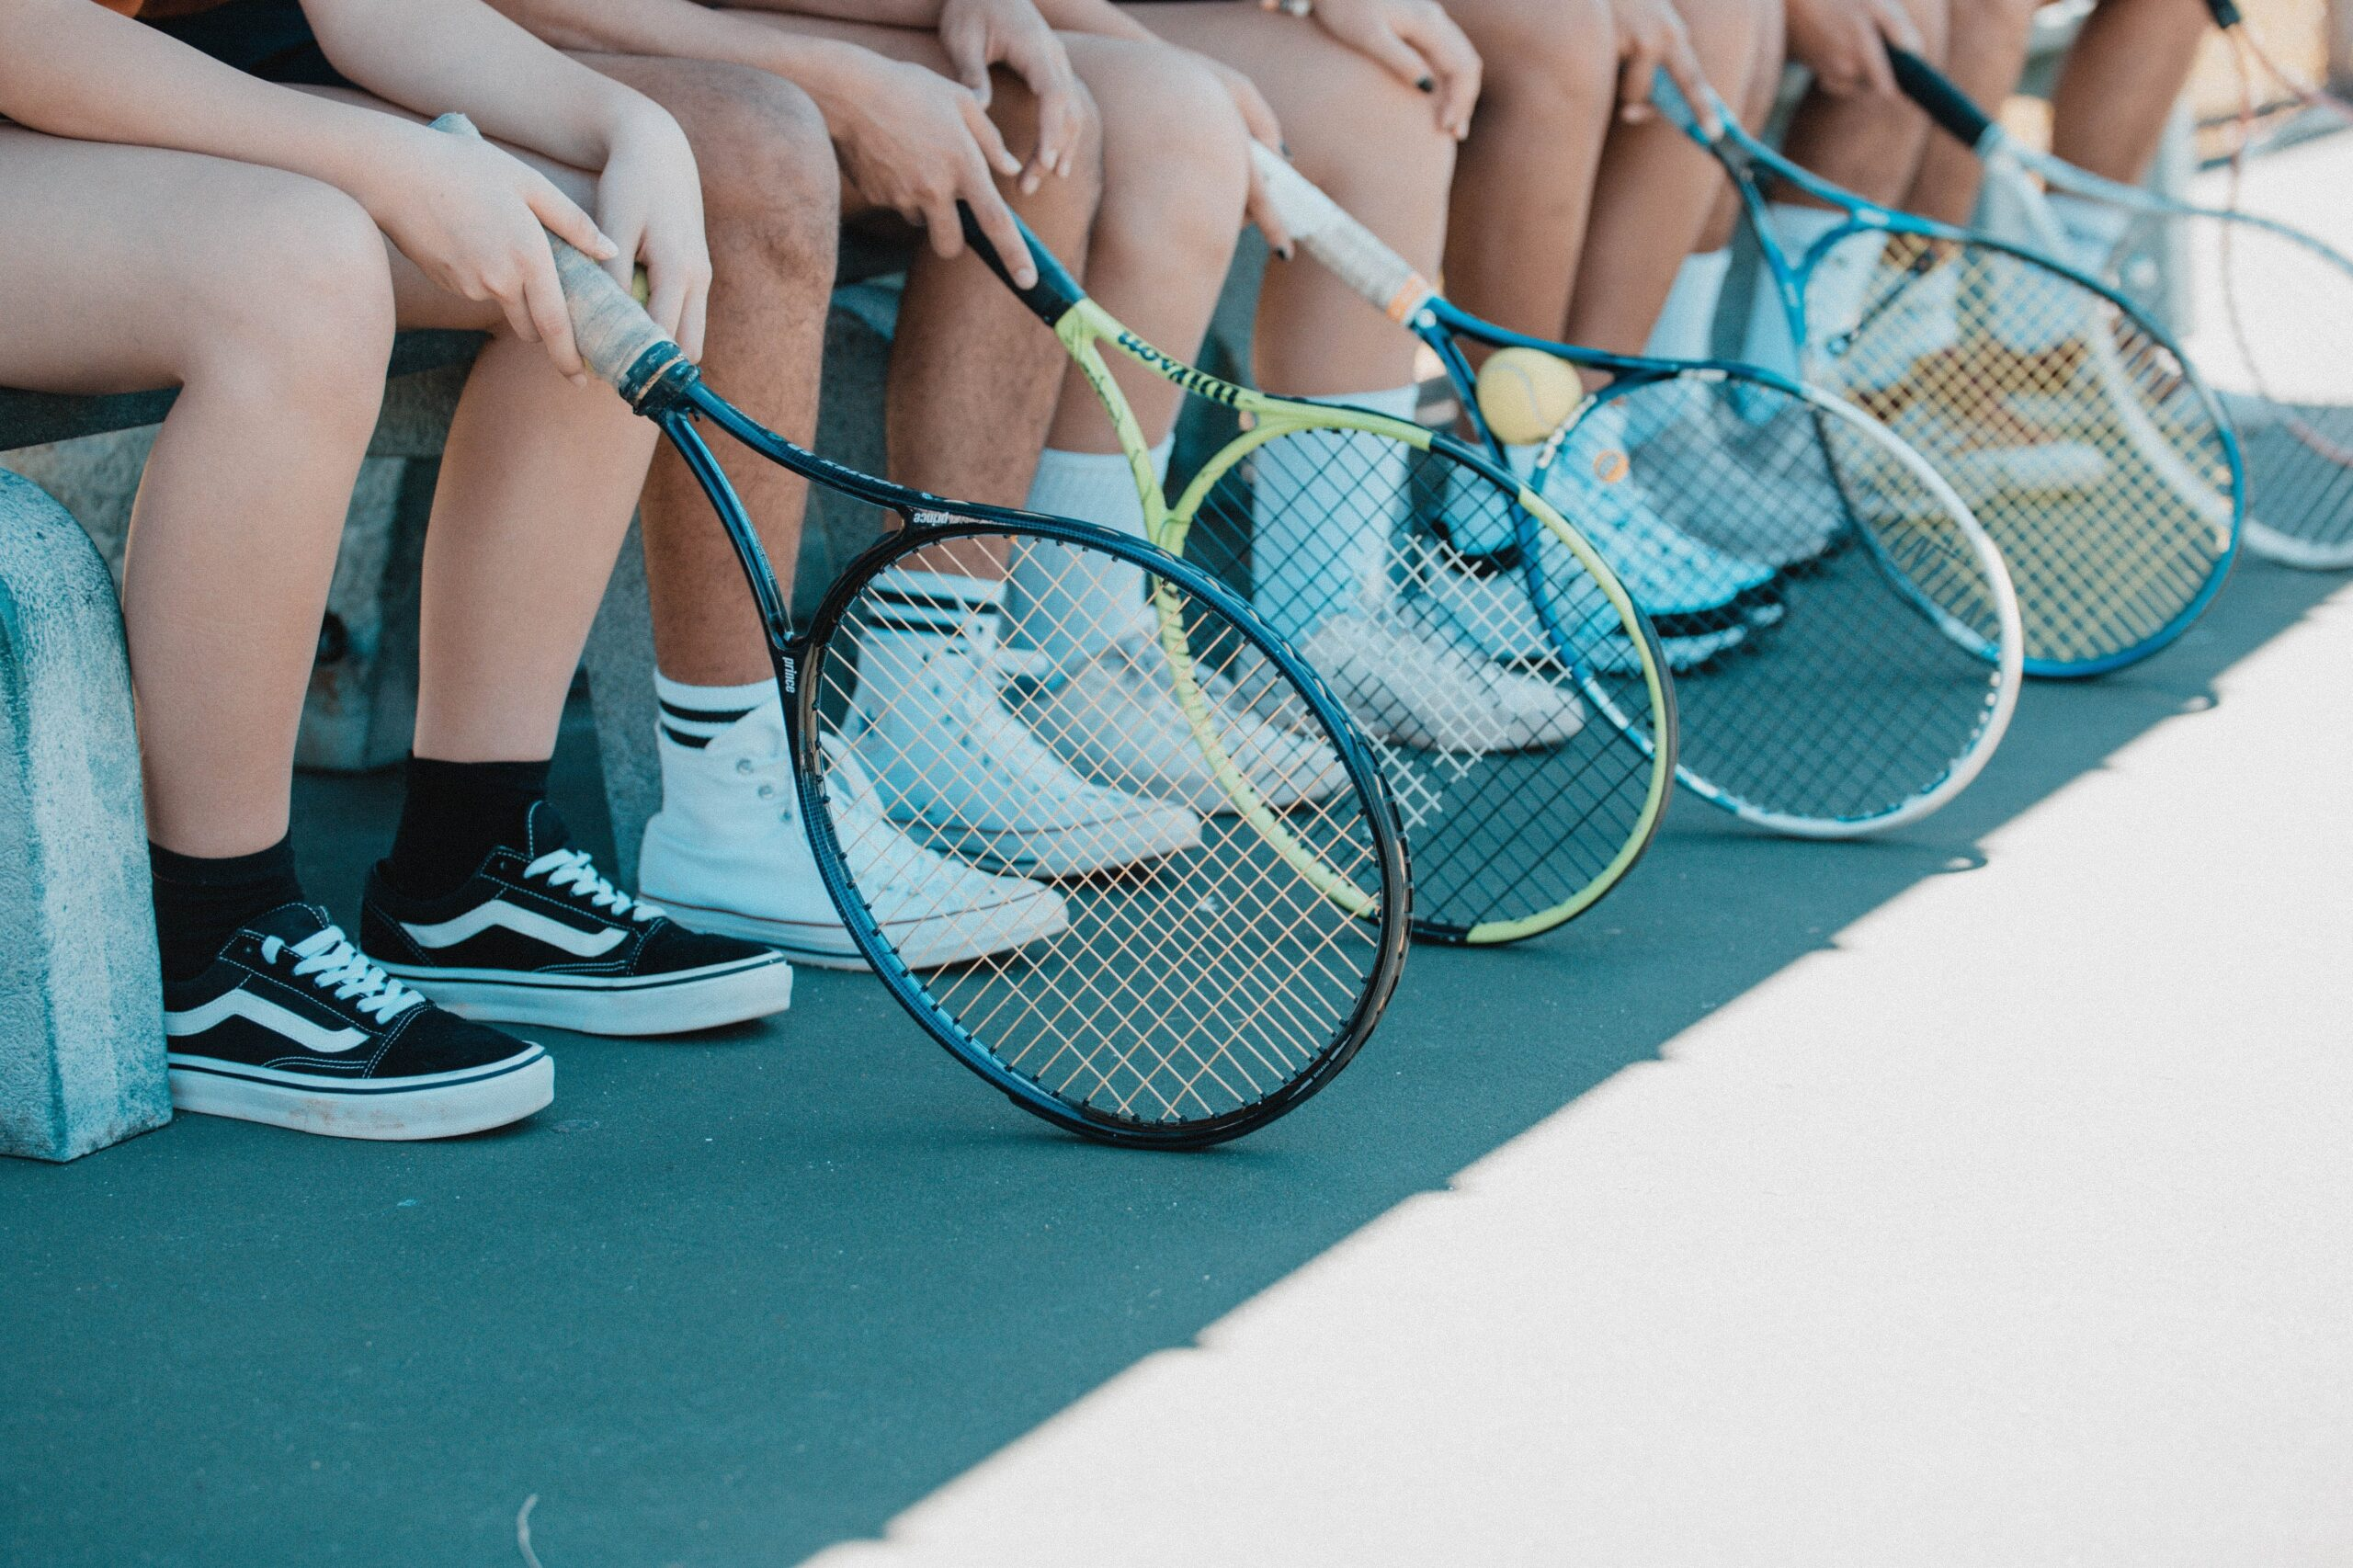 Row of tennis players. We see their feet and rackets on the ground.